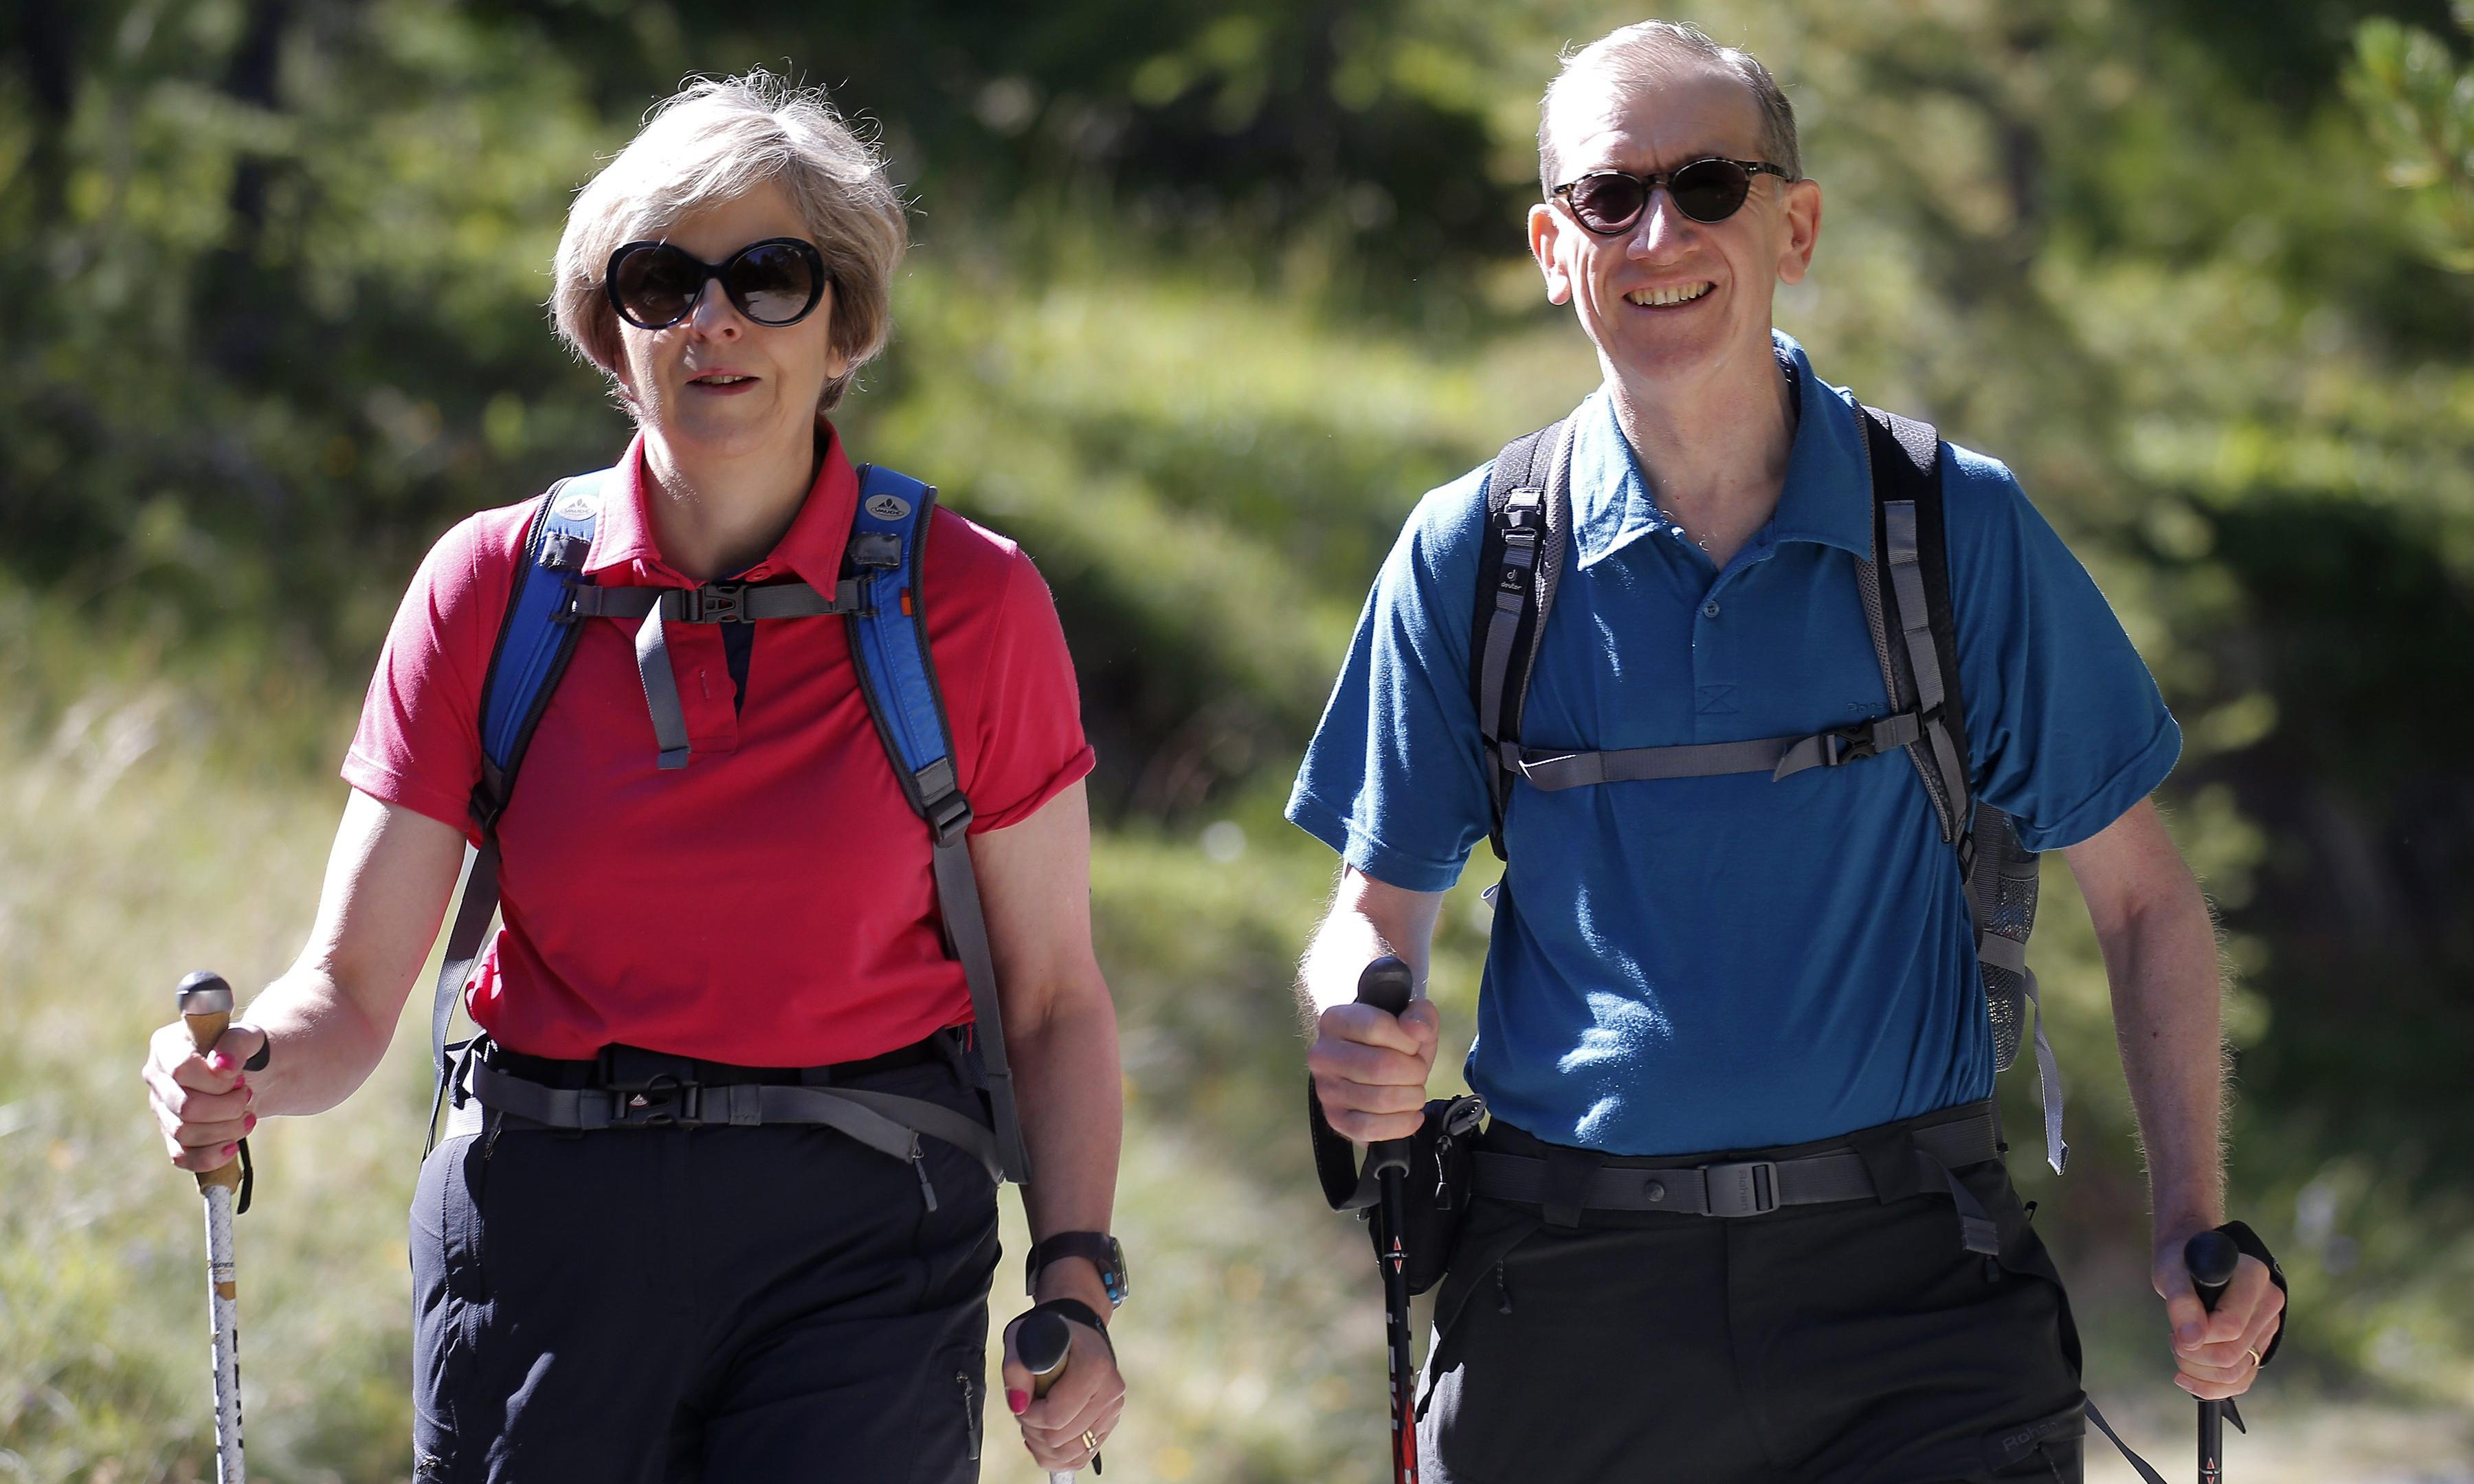 Theresa May: Swiss holidays brought home impact of climate crisis